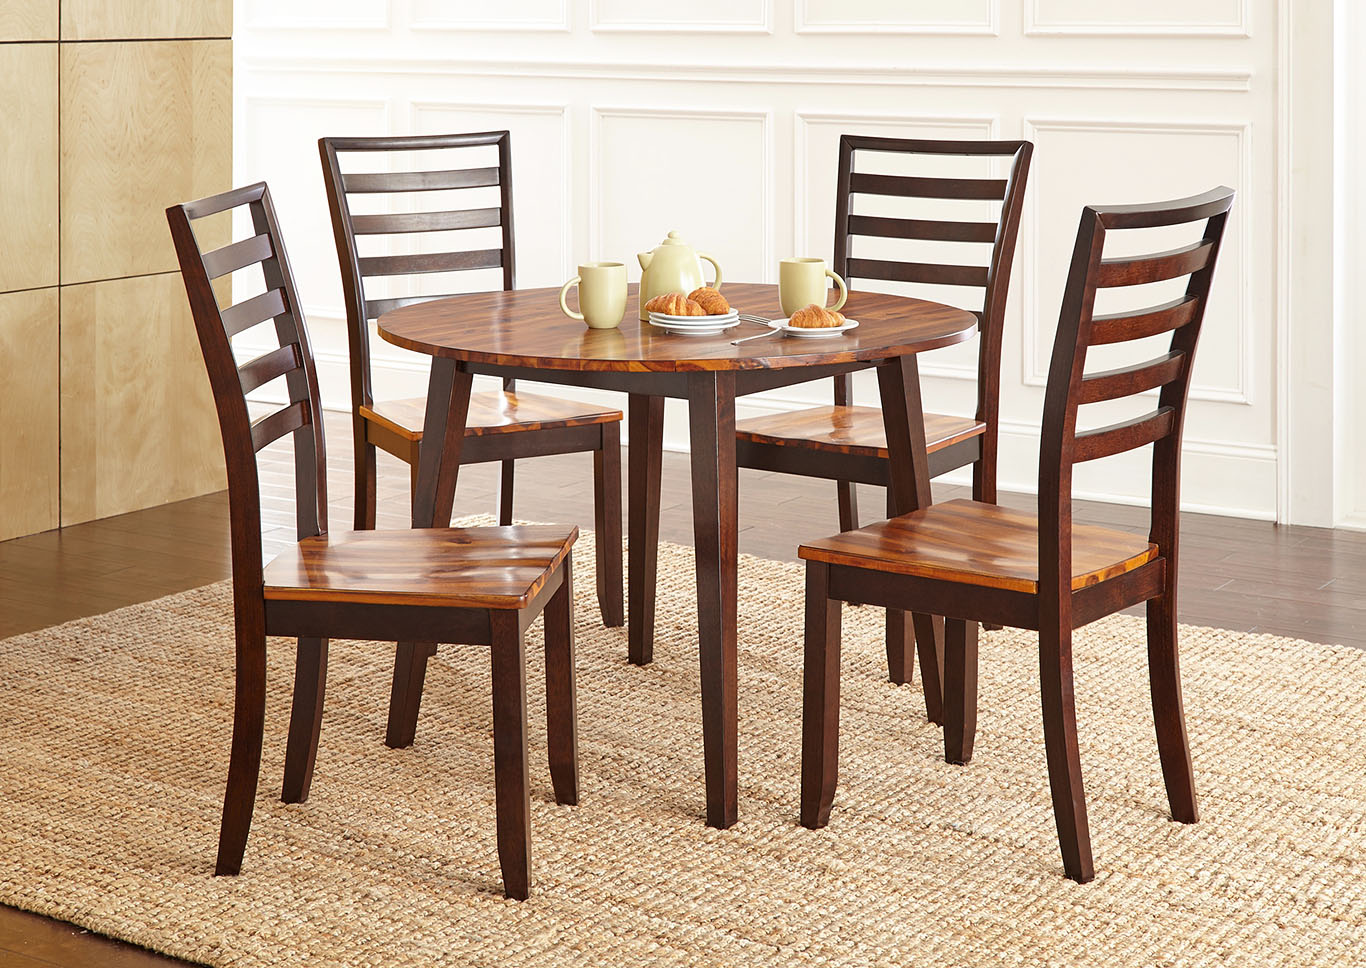 Abaco Brown Round Dining Set W/ 4 Chairs,Steve Silver